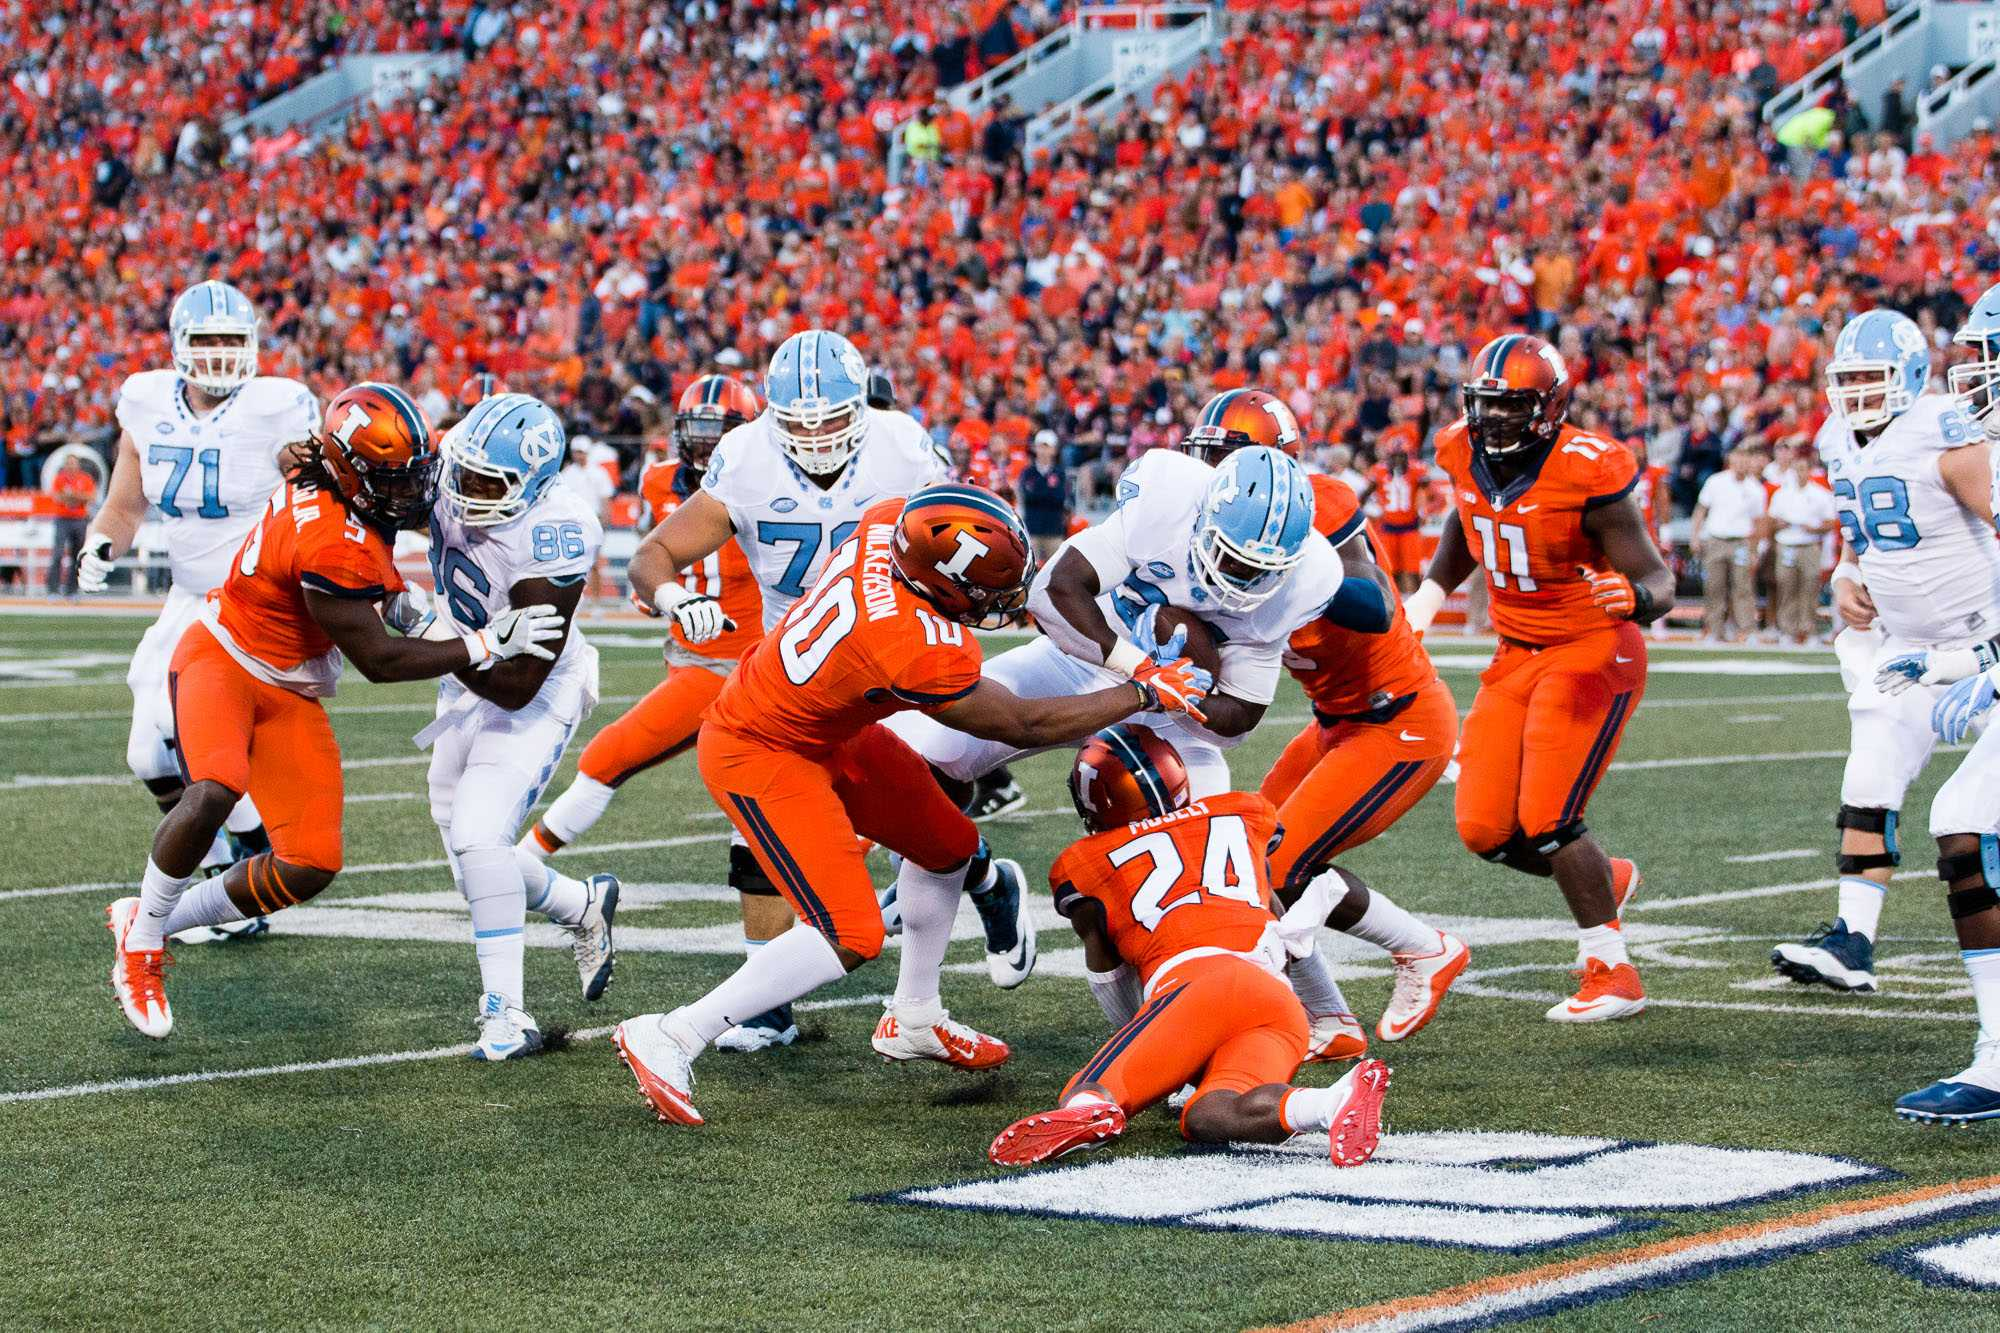 Illinois linebacker Hardy Nickerson (10) tries to strip the ball from North Carolina tailback Elijah Hood (34) during the game against North Carolina at Memorial Stadium on Saturday, September 10. The Illini loss 48-23.